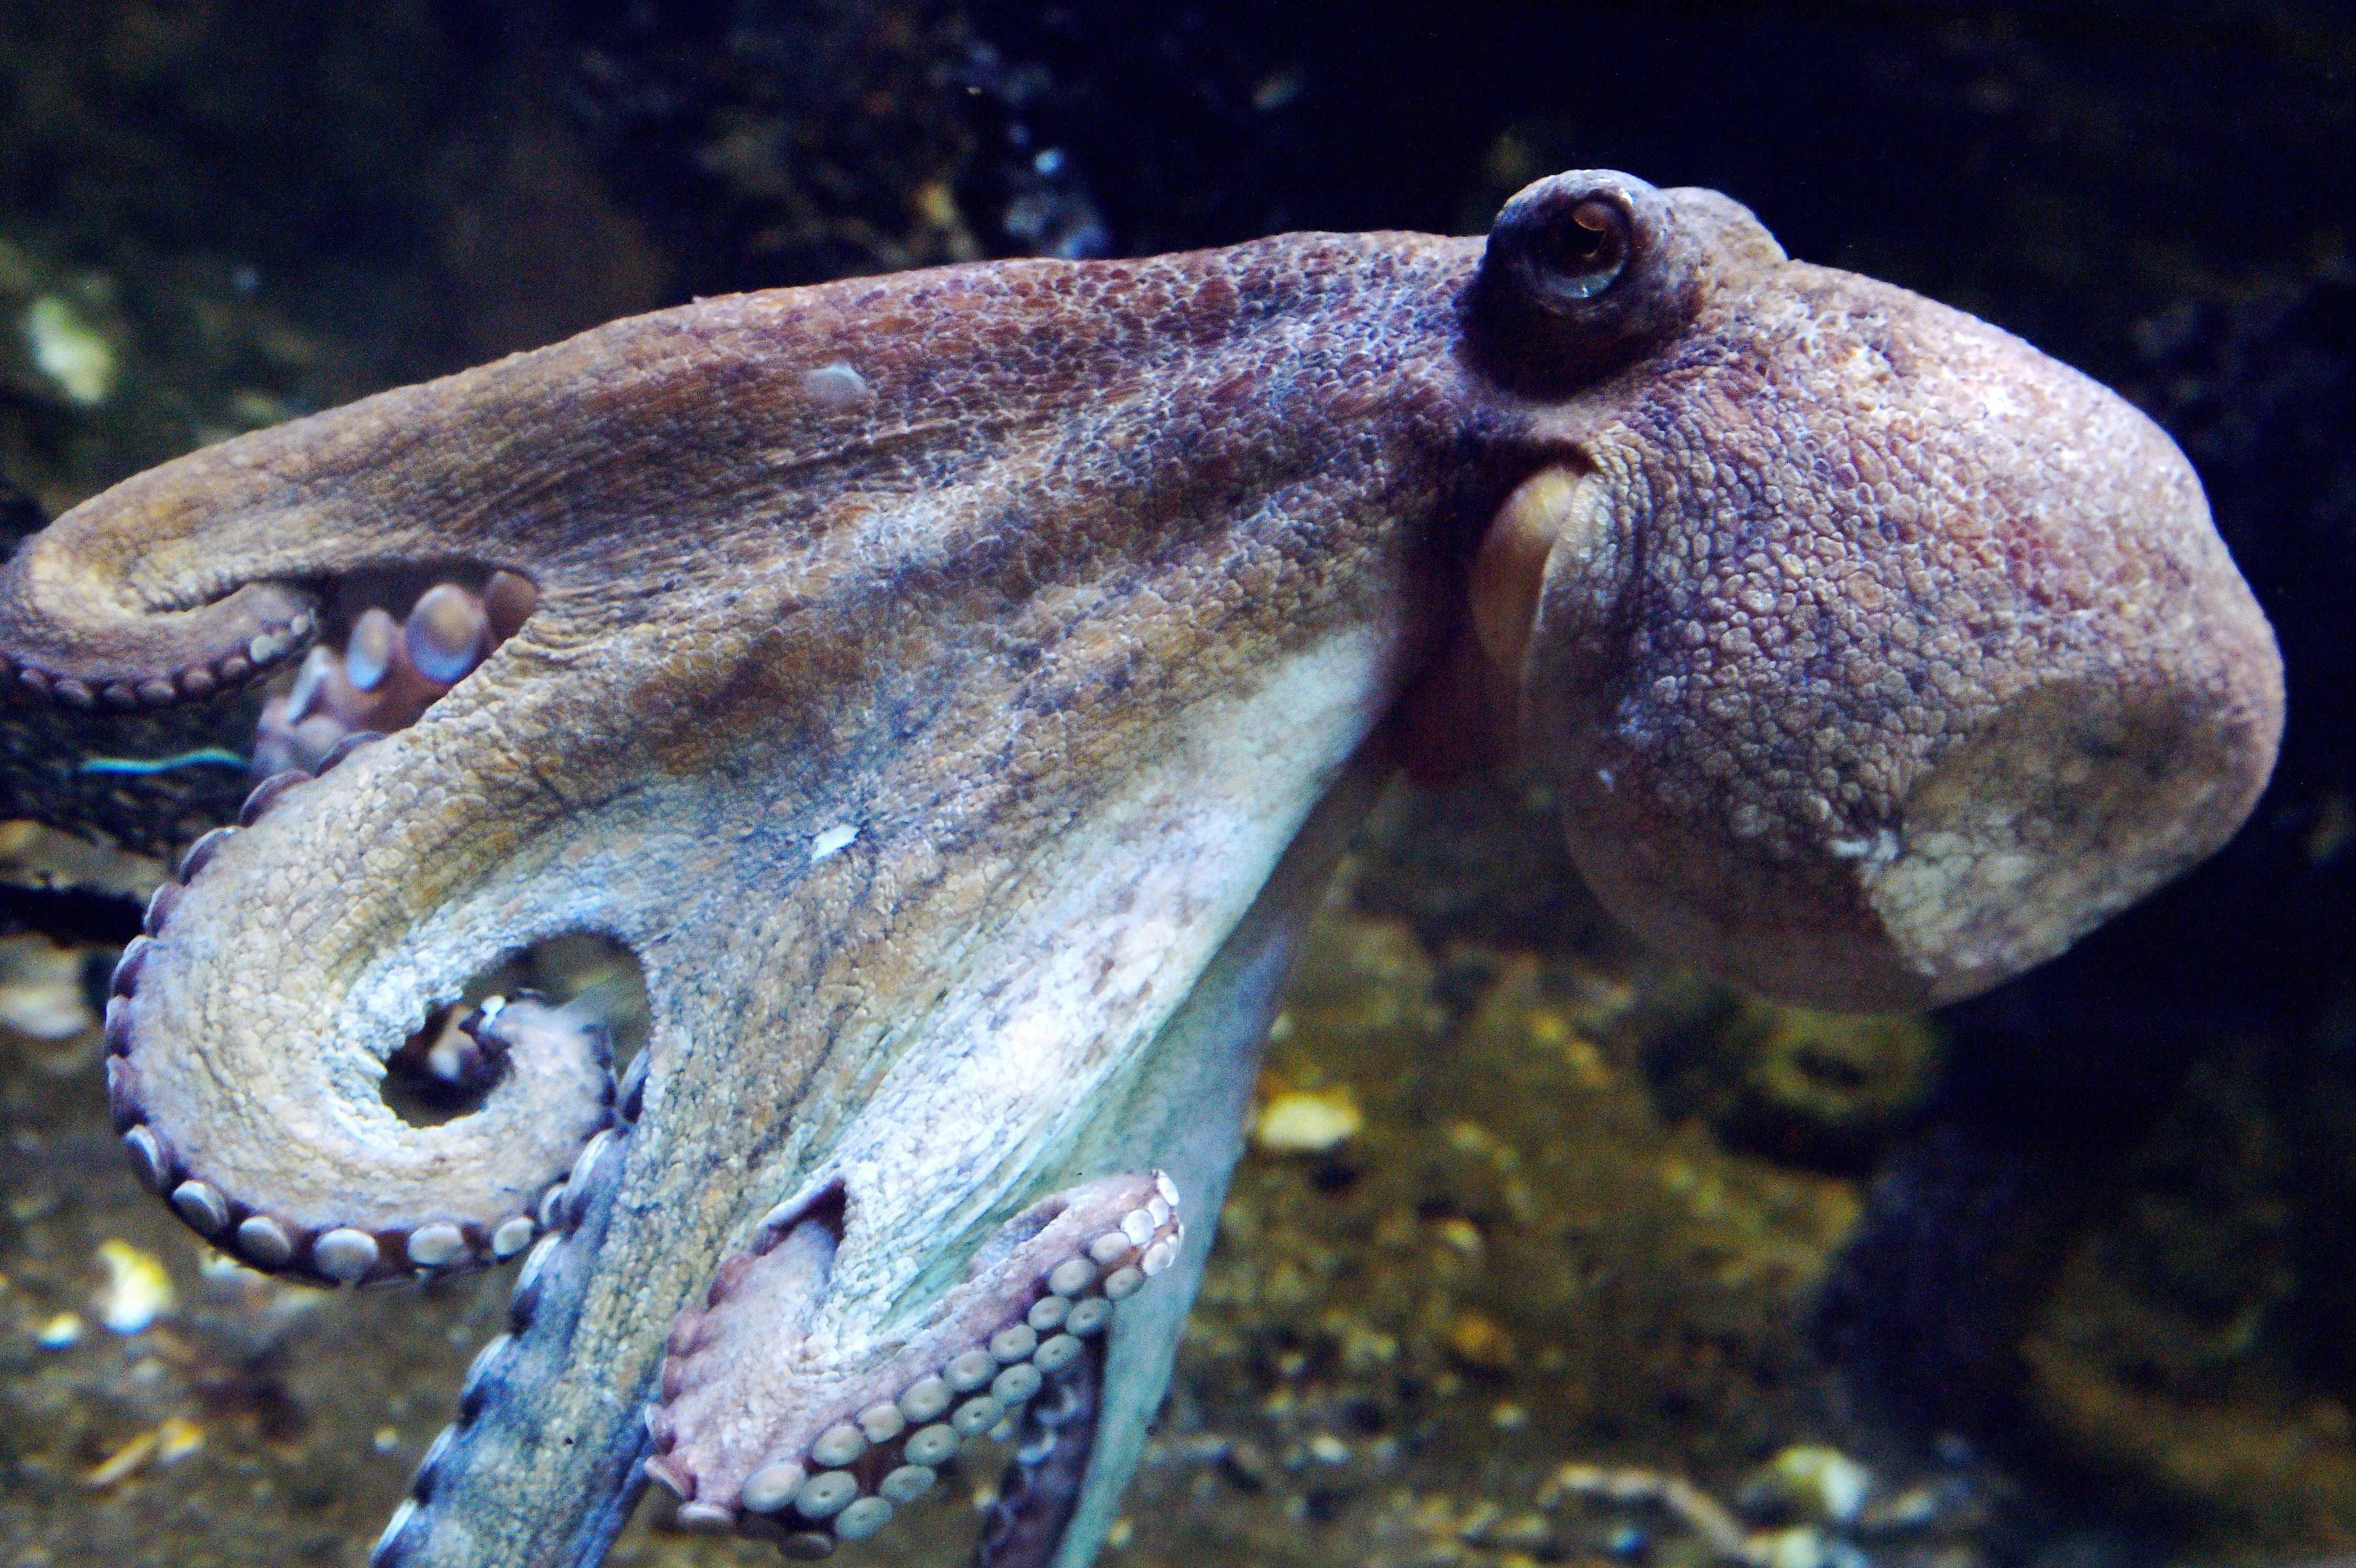 An octopus swims at the Ocearium in Le Croisic, western France, on December 6, 2016. (Photo by LOIC VENANCE / AFP)        (Photo credit should read LOIC VENANCE/AFP/Getty Images)